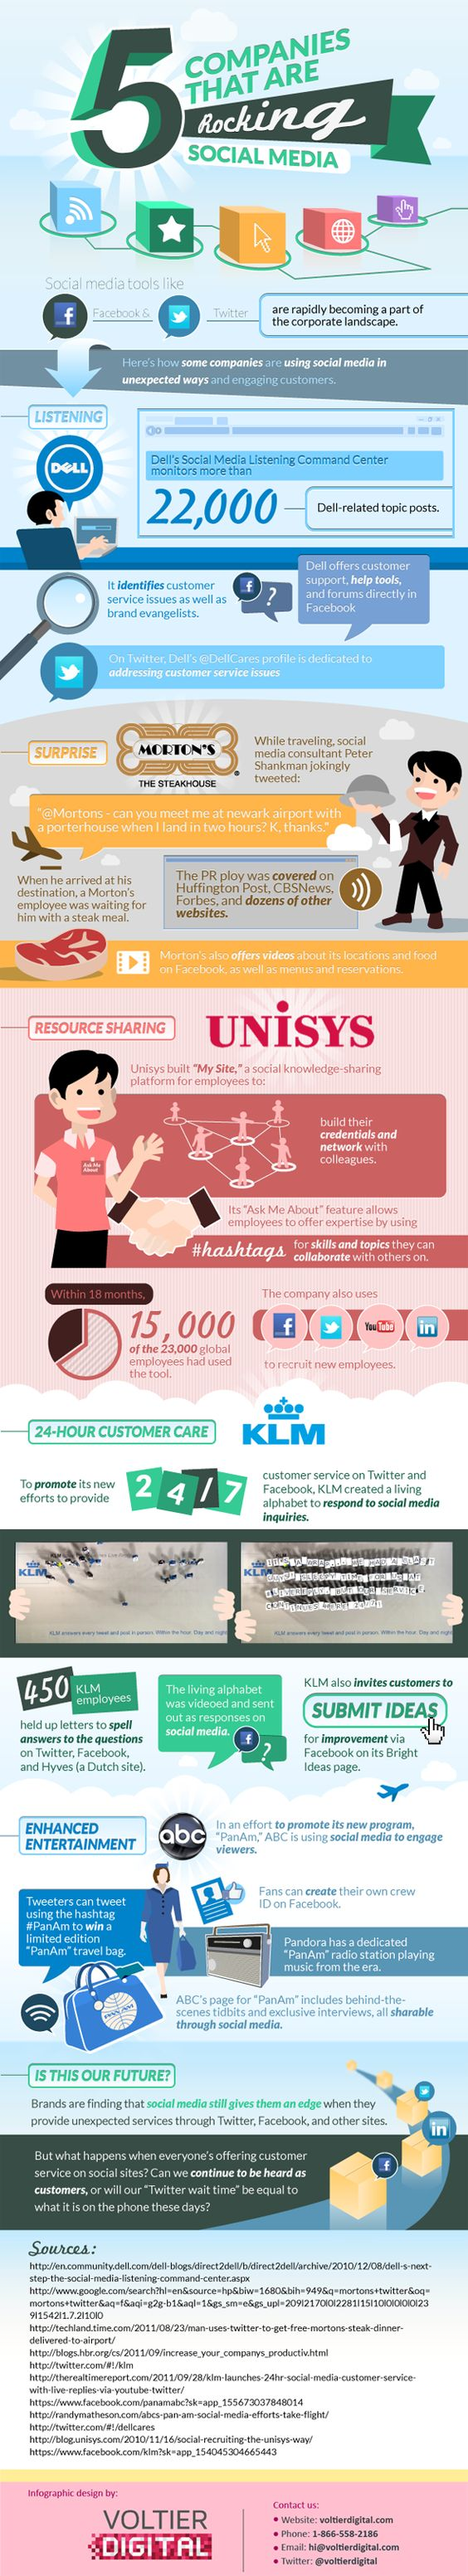 Check out these interesting ways a few companies our using social media to build their business.: